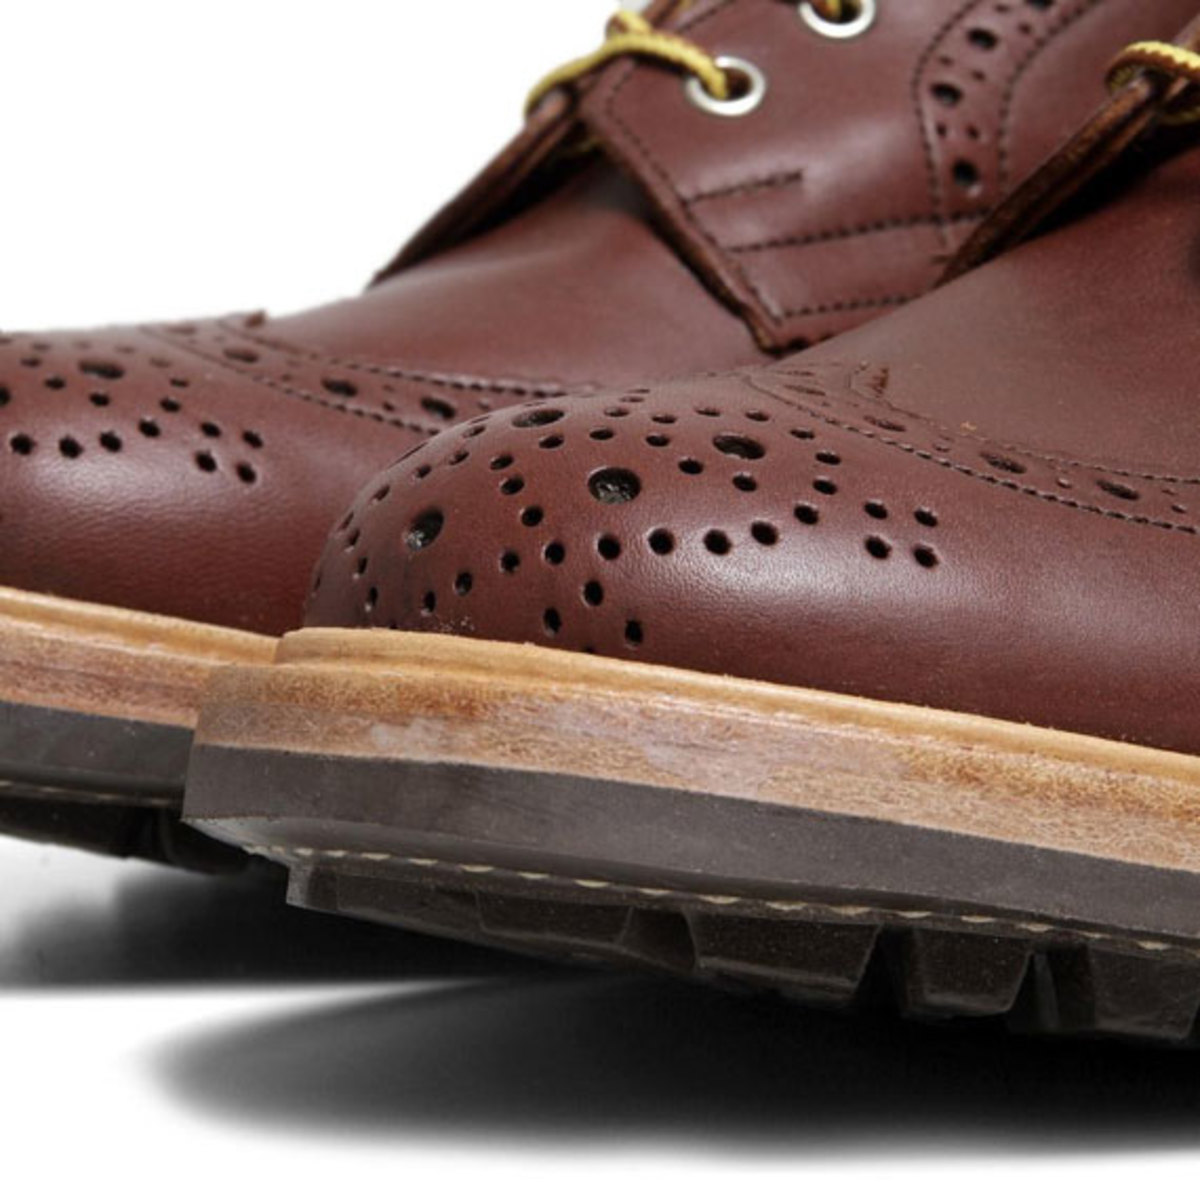 trickers-for-end-stow-brogue-derby-boot-14